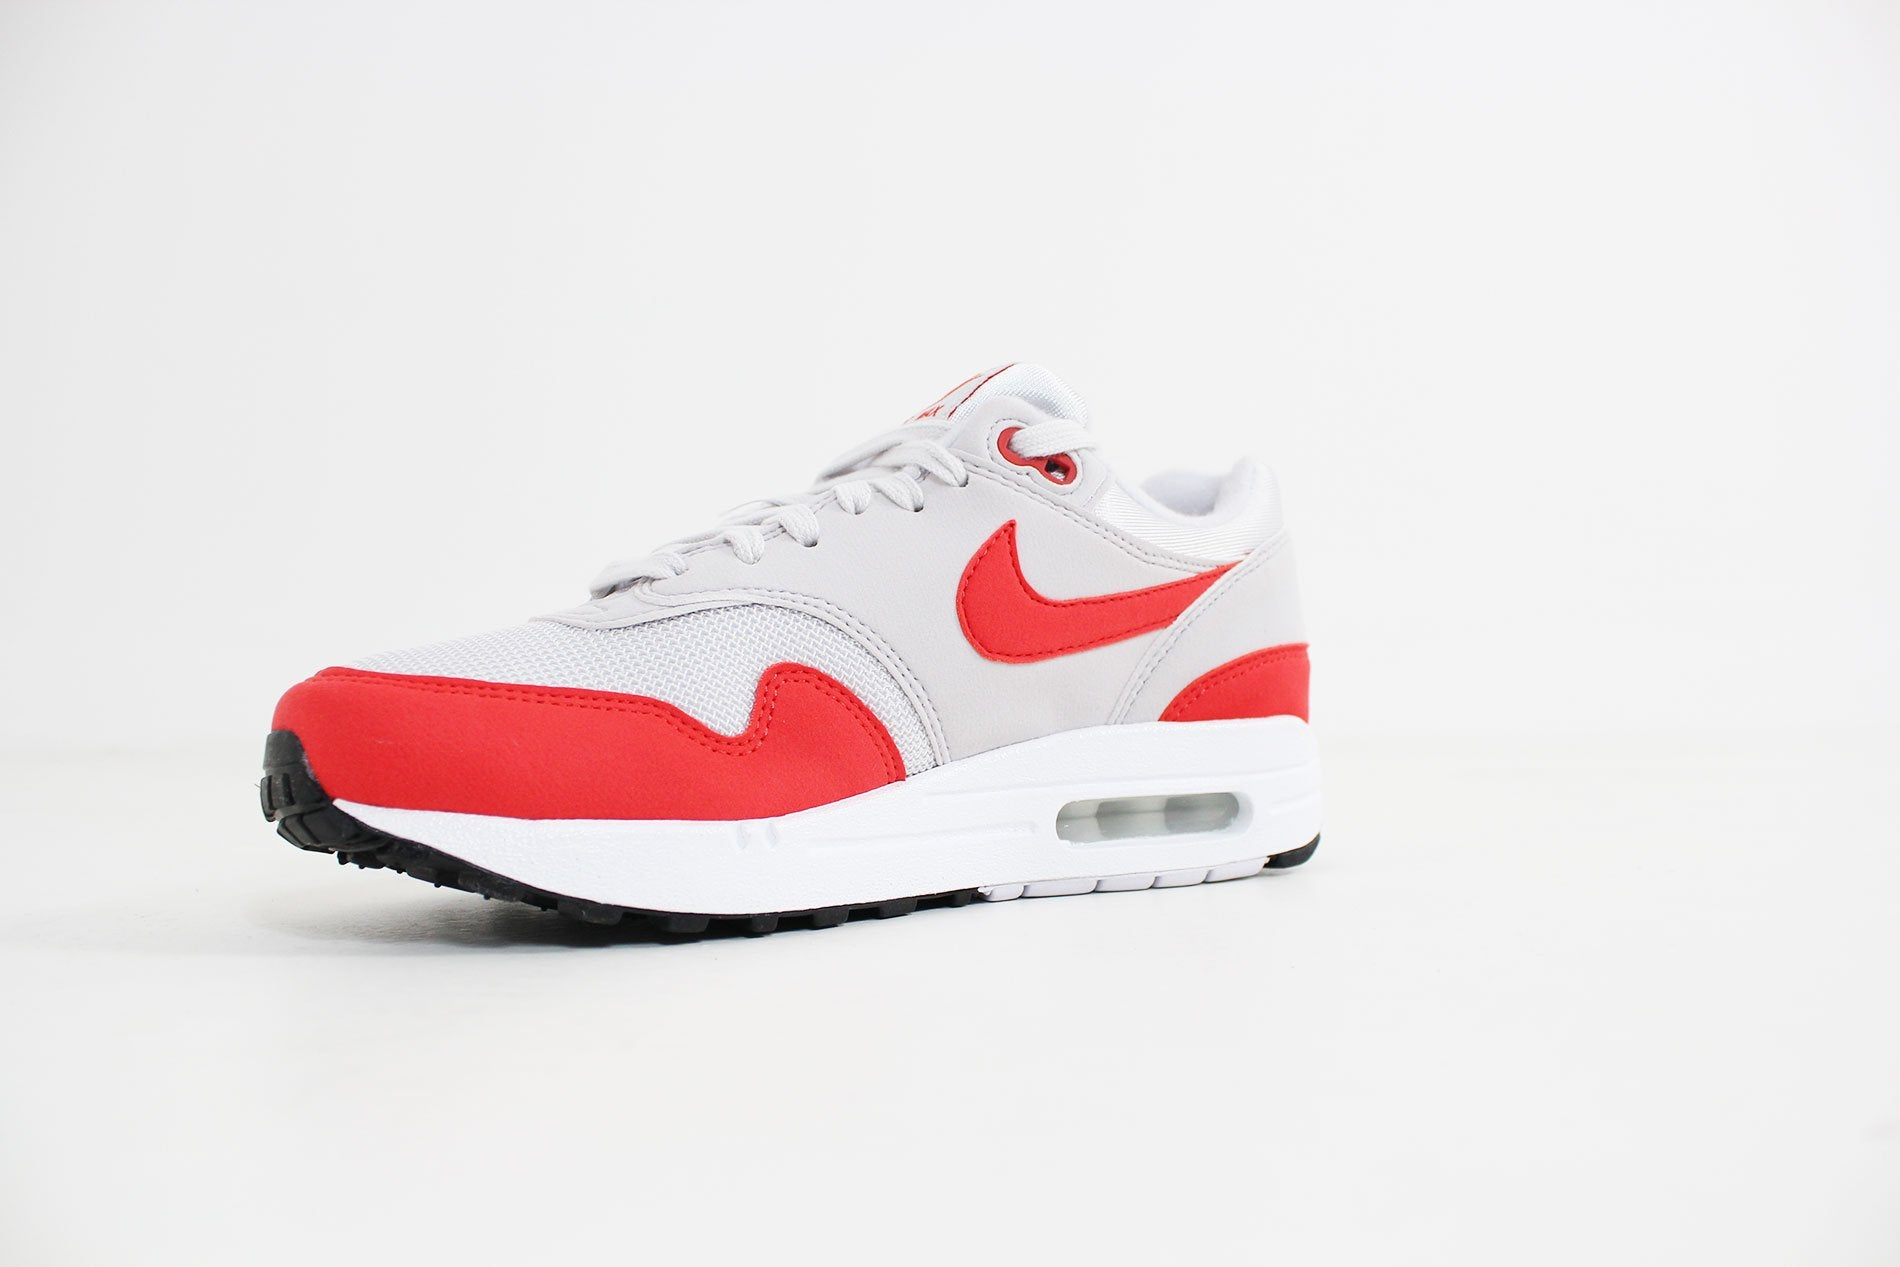 Nike - Air Max 1 Women (Vast Grey/ Habanero Red) 319986-035